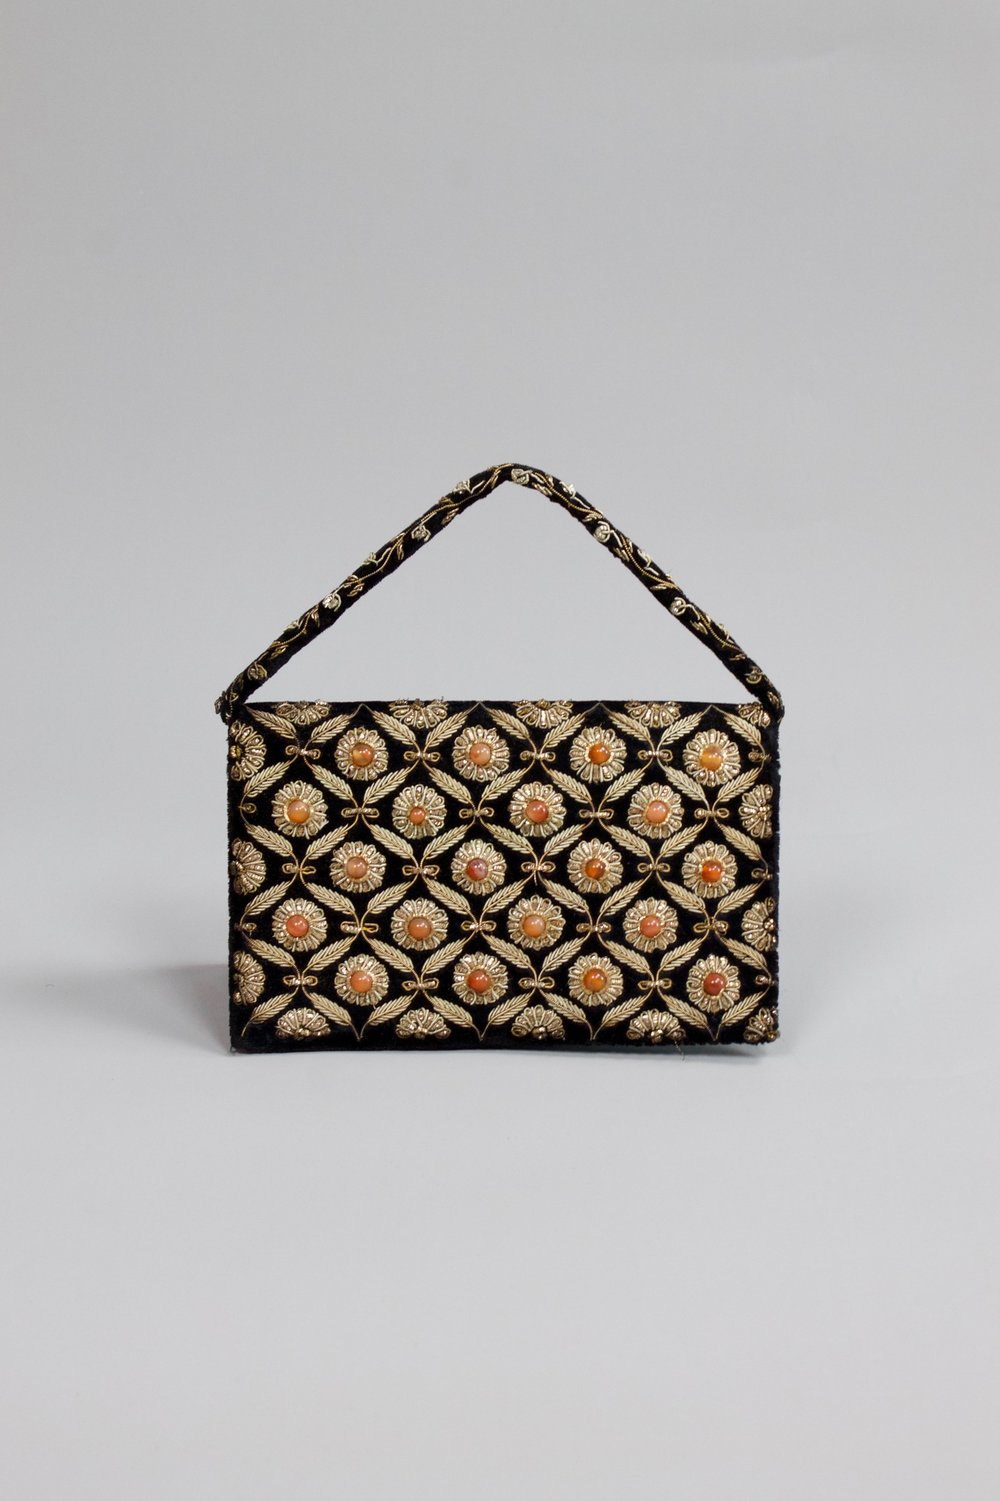 Gold embroidery purse   Found in a vintage shop in Paris. This bag is developed and manufactured in India.